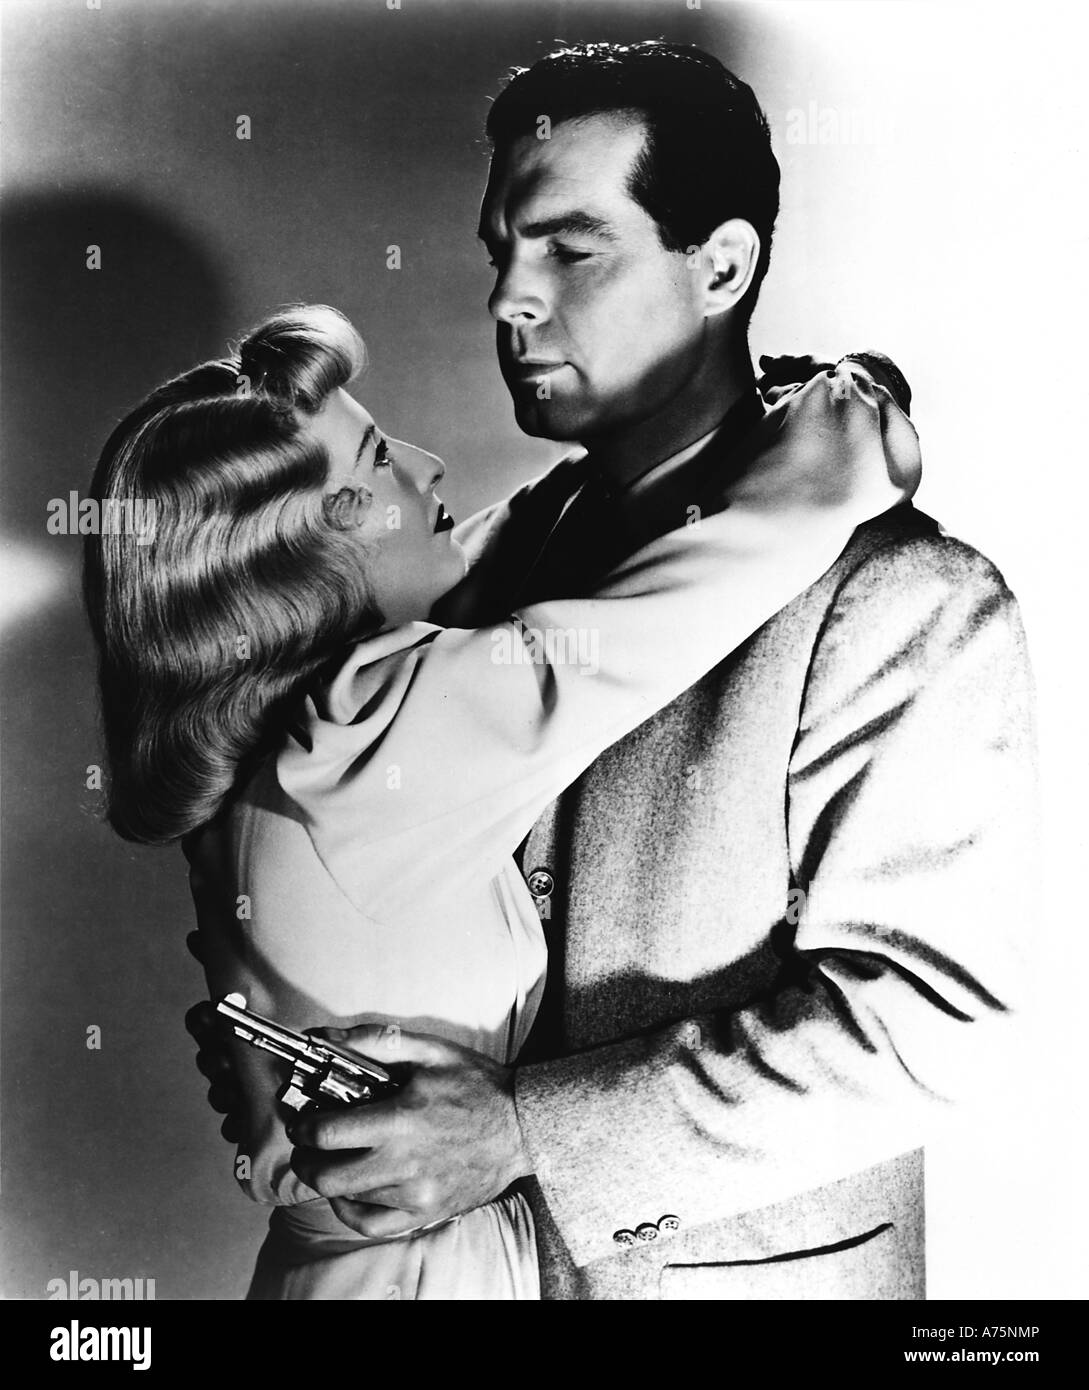 DOUBLE INDEMNITY - 1944 Paramount film with Barbara Stanwyck and Fred MacMurray - Stock Image